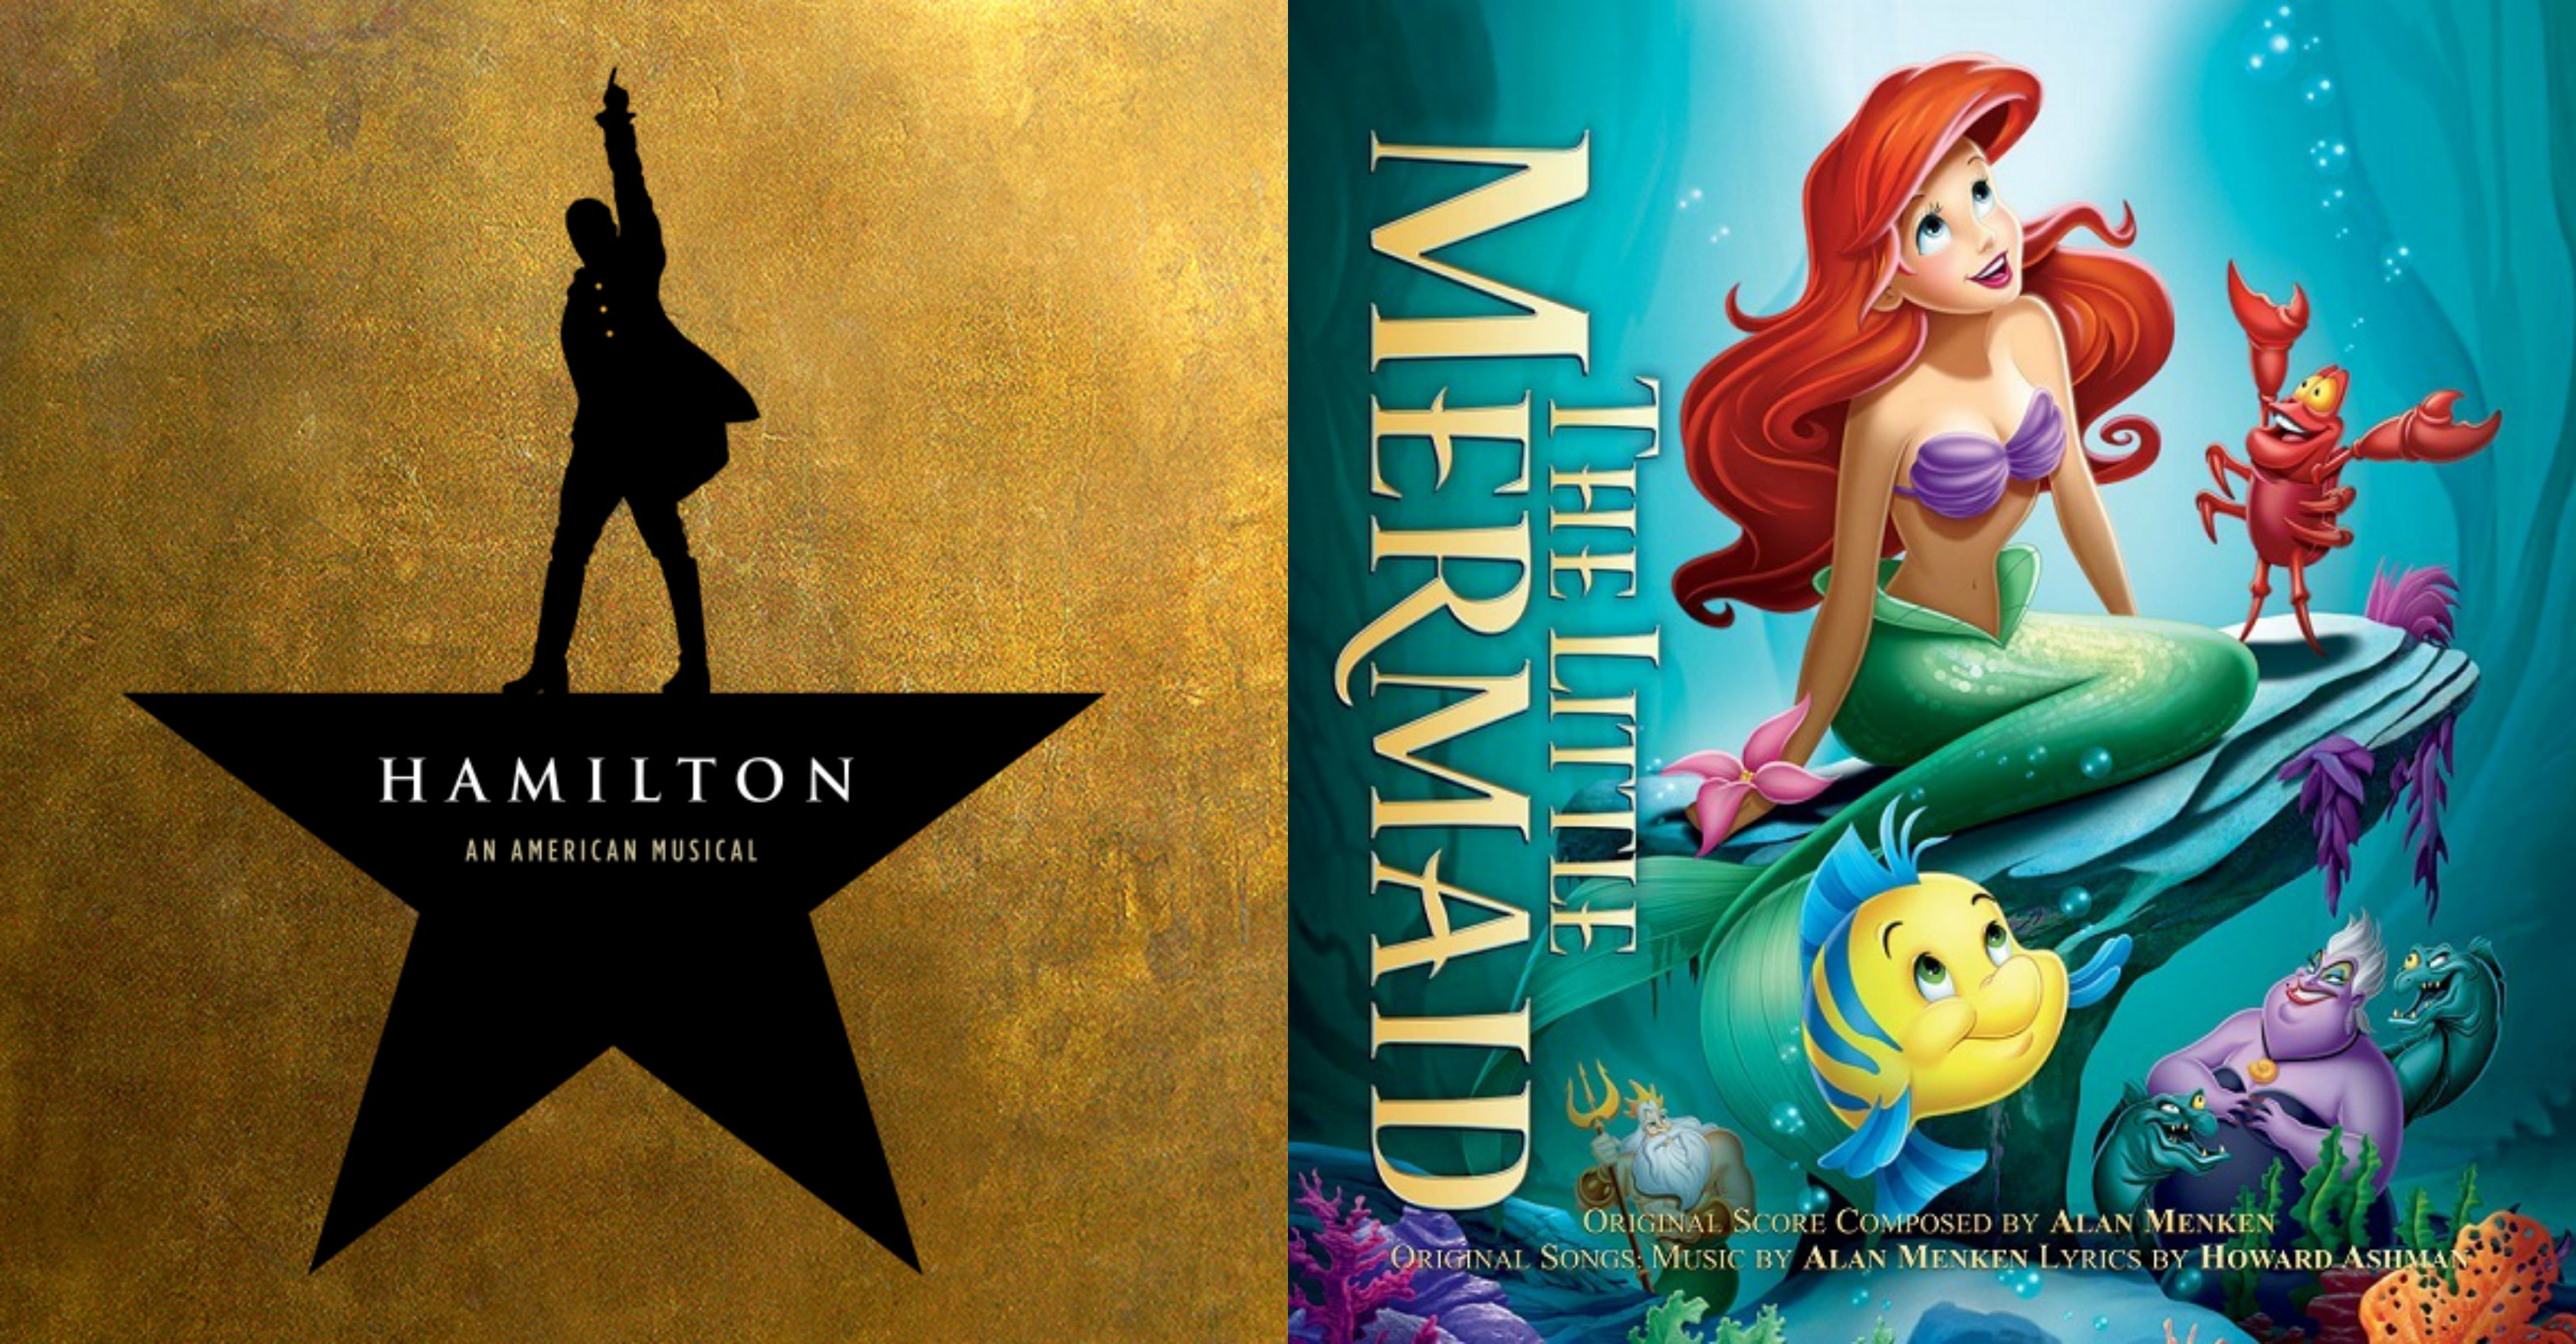 """Take a Break and Enjoy These """"Little Mermaid"""" / """"Hamilton"""" Song Connections"""